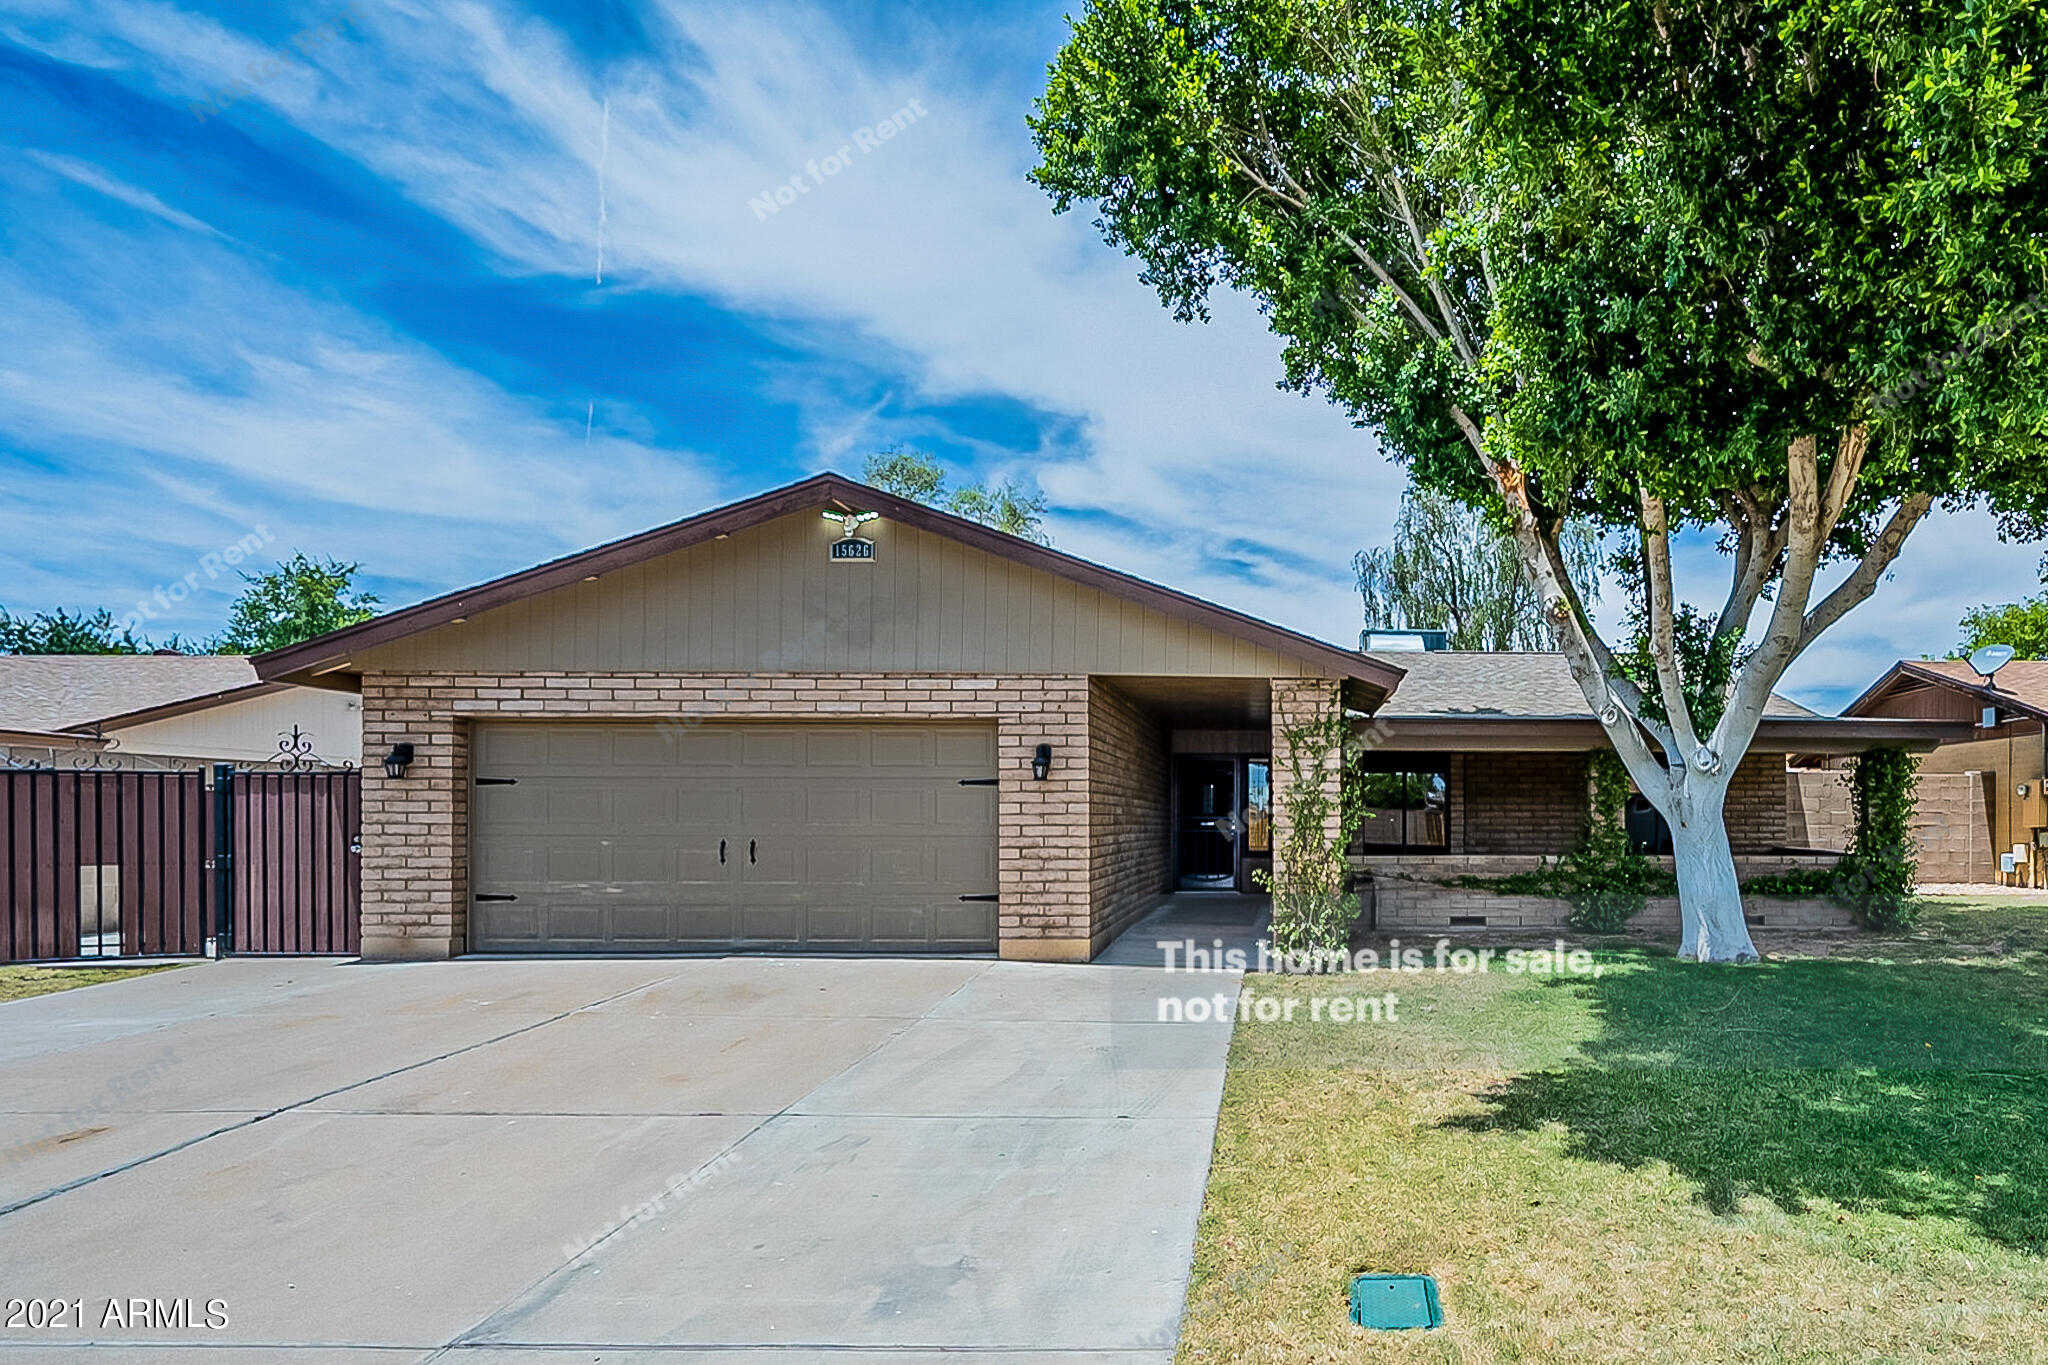 $390,000 - 3Br/2Ba - Home for Sale in Deerview Unit 27, Glendale